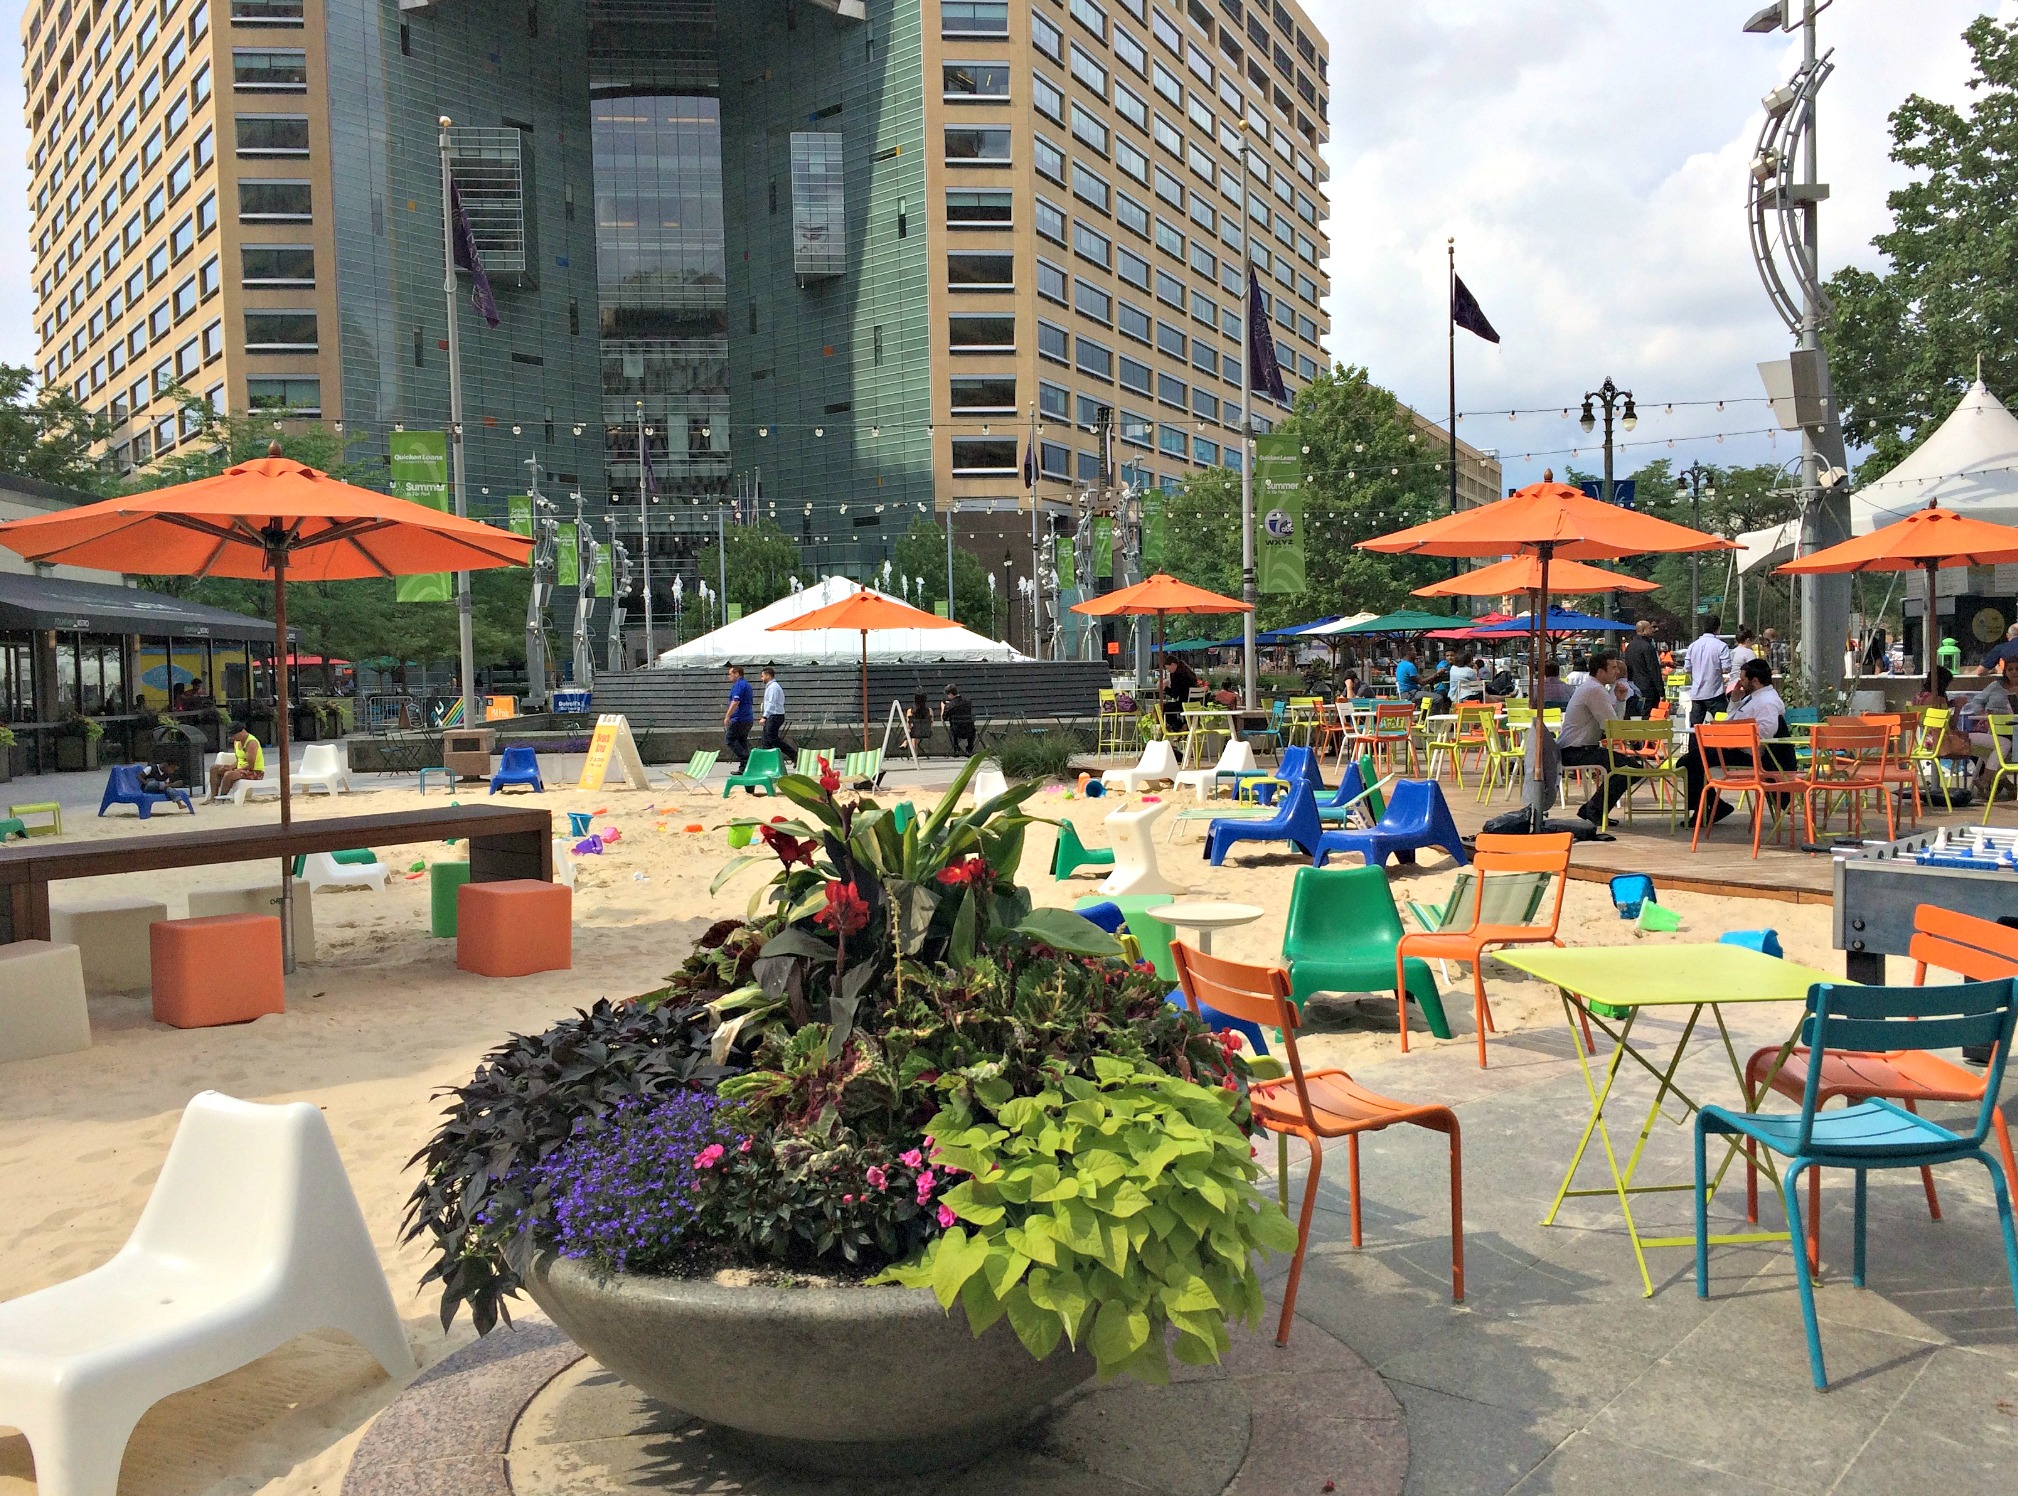 Campus Martius Park, Detroit's City Beach